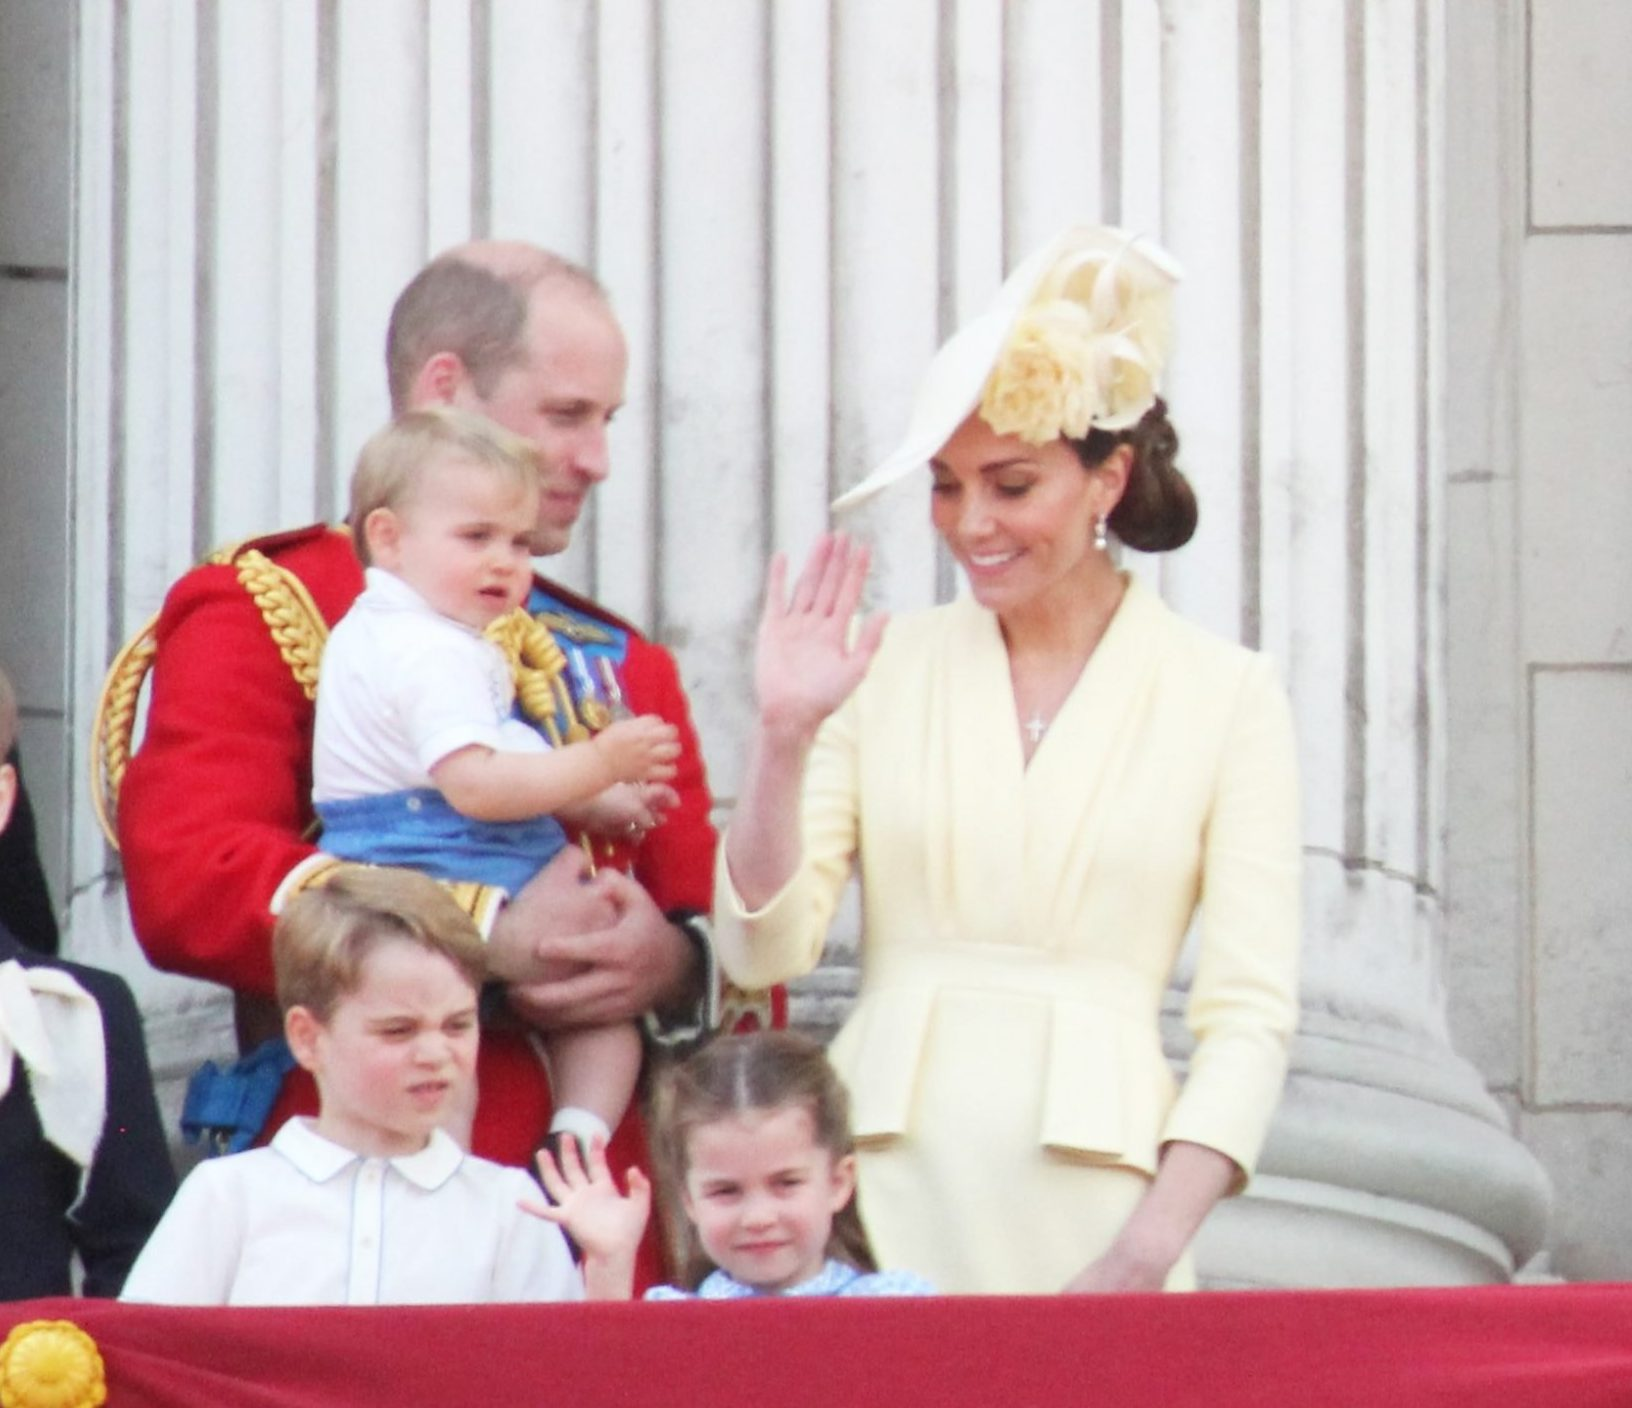 Prince William, Duchess Catherine, Prince George, Princess Charlotte and Prince Louis wave from their balcony.